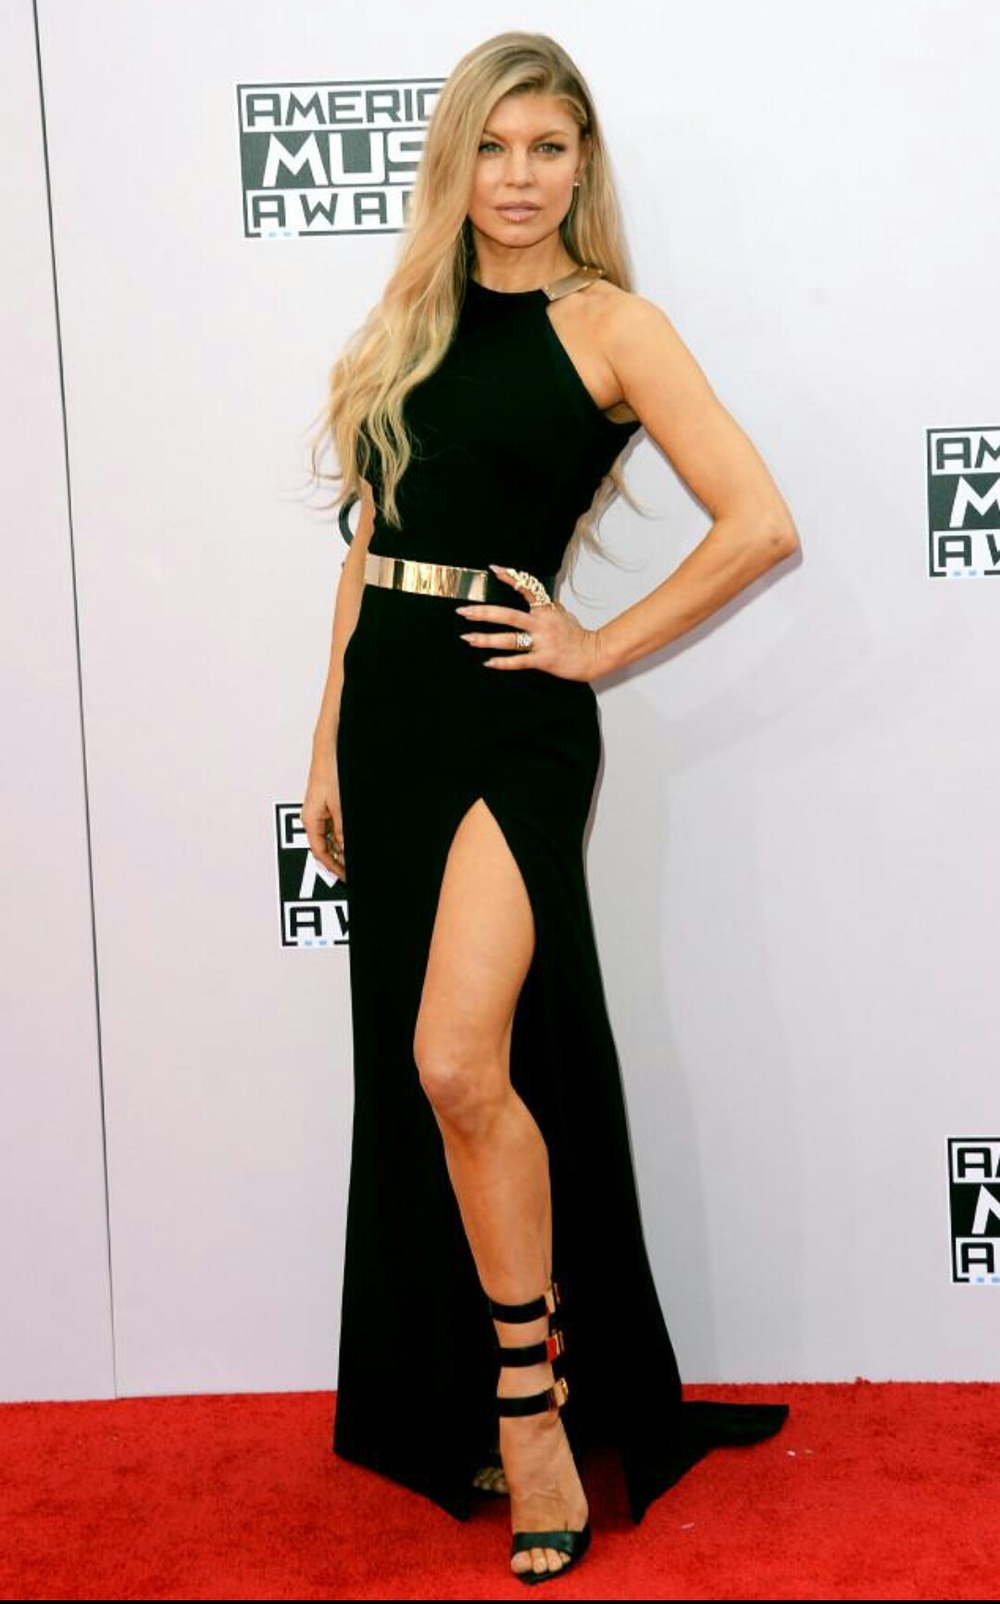 Fergie doing the most at the AMAs. Get it, girl.